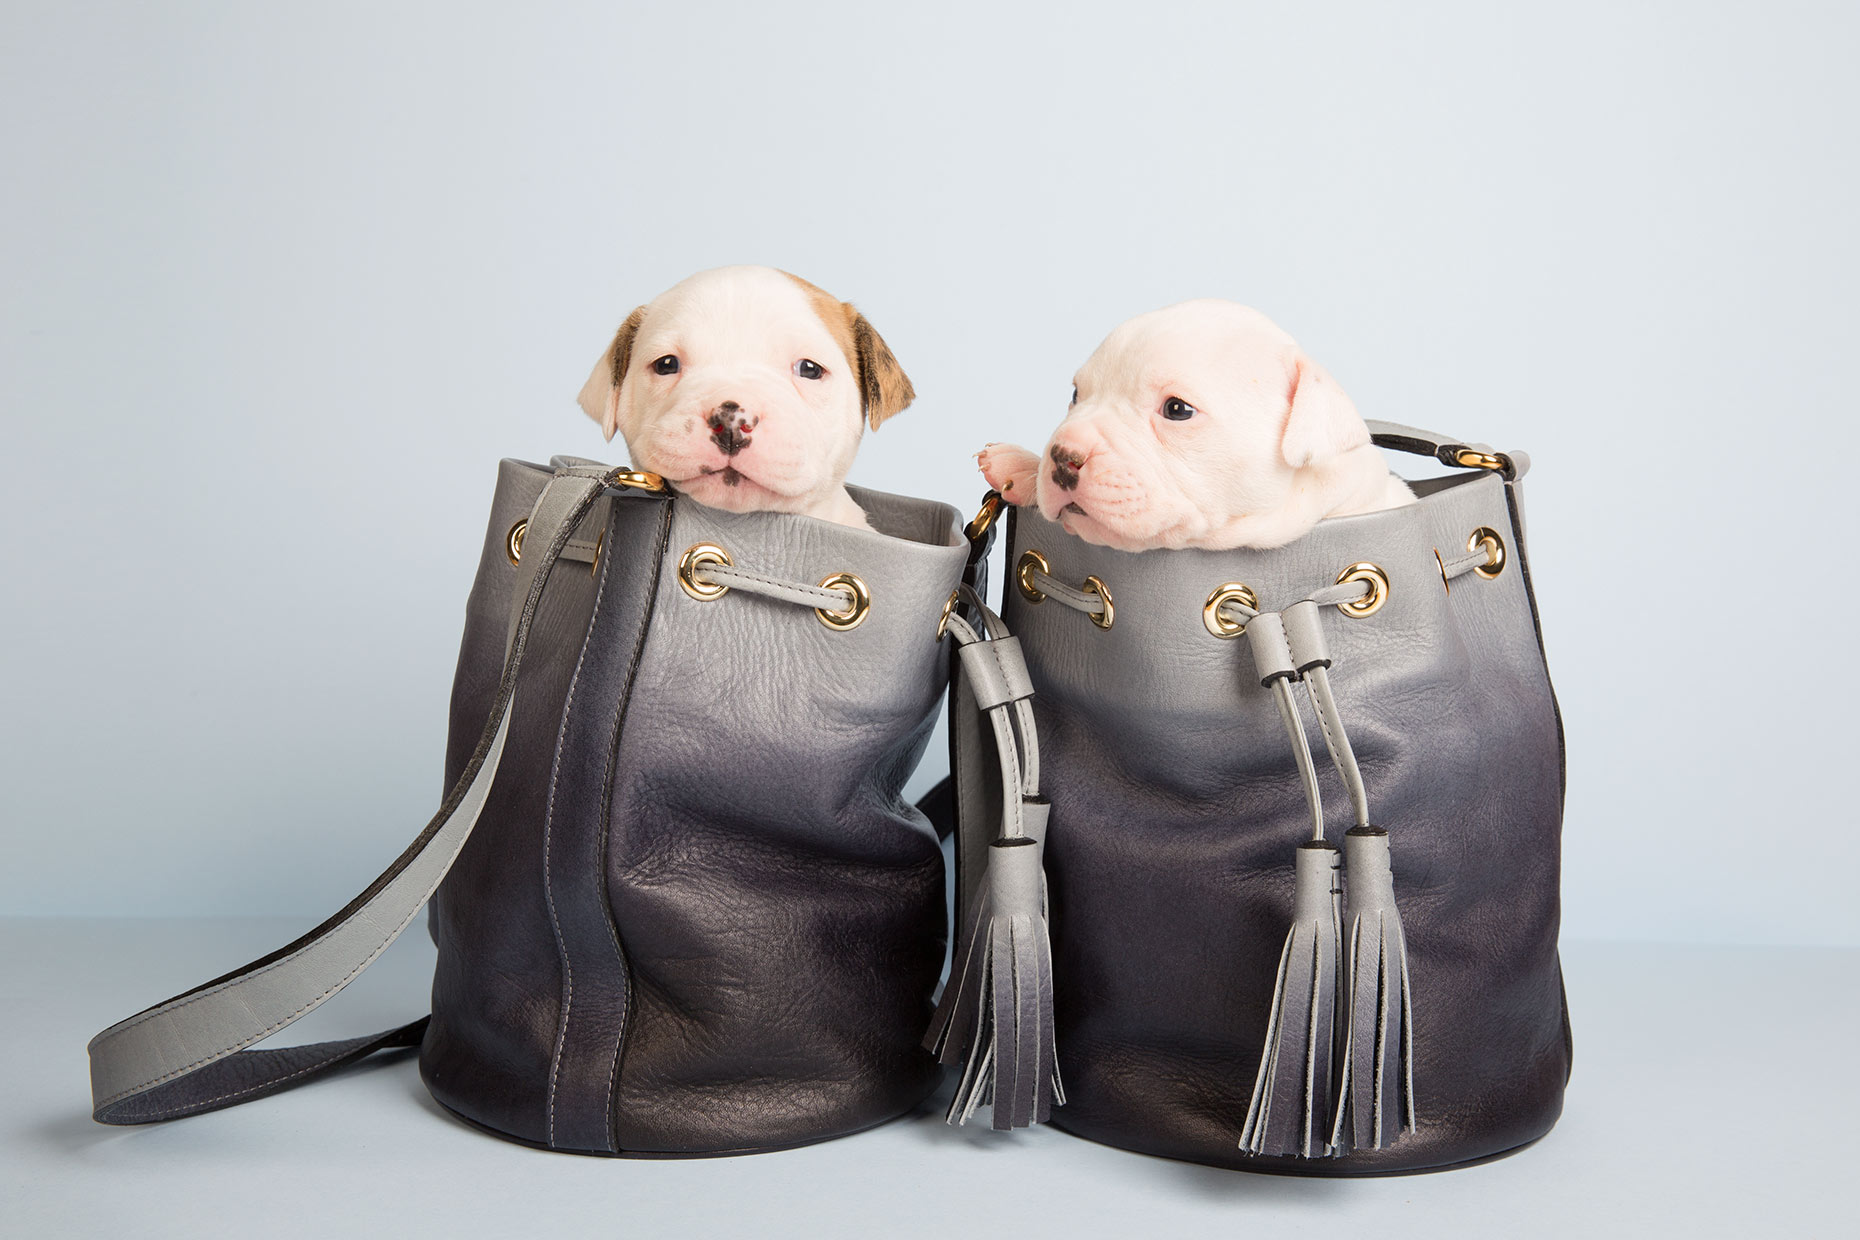 CG_puppies_6625W1